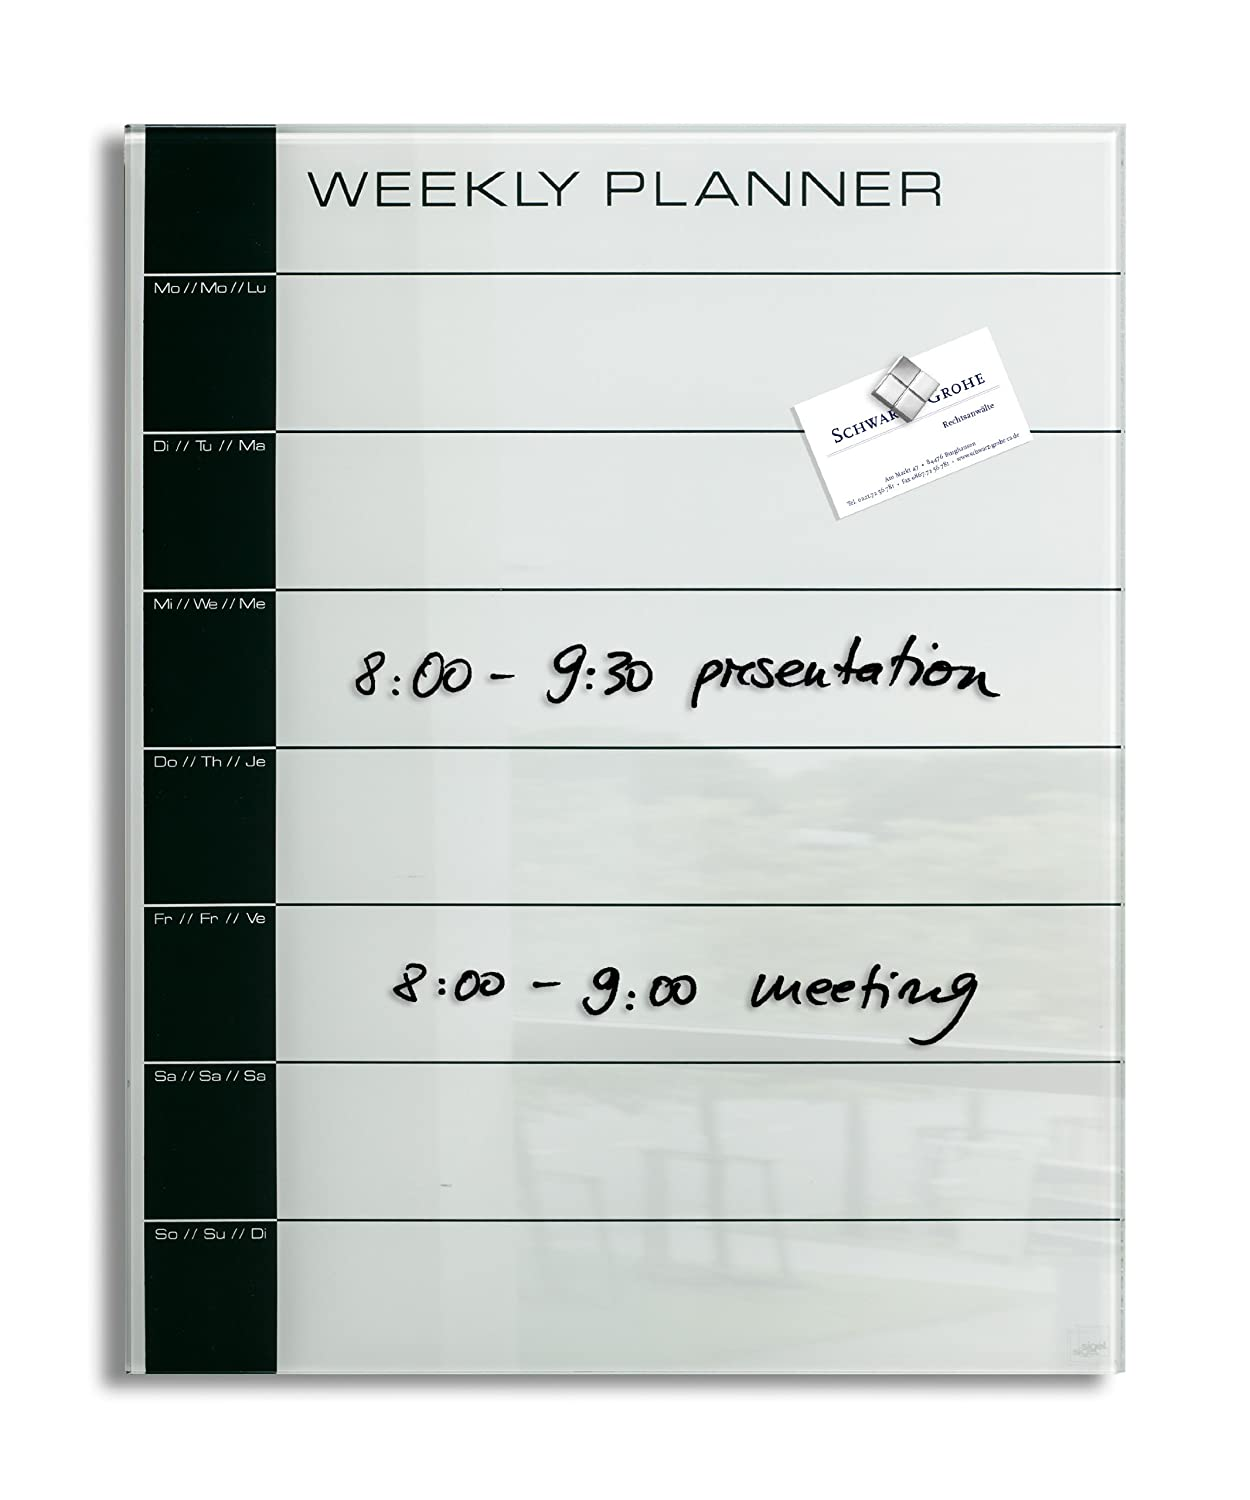 Lavagna magnetica in vetro artverum�, weekly planner, bianca/nera, 40 x 50 cm Sigel GL152